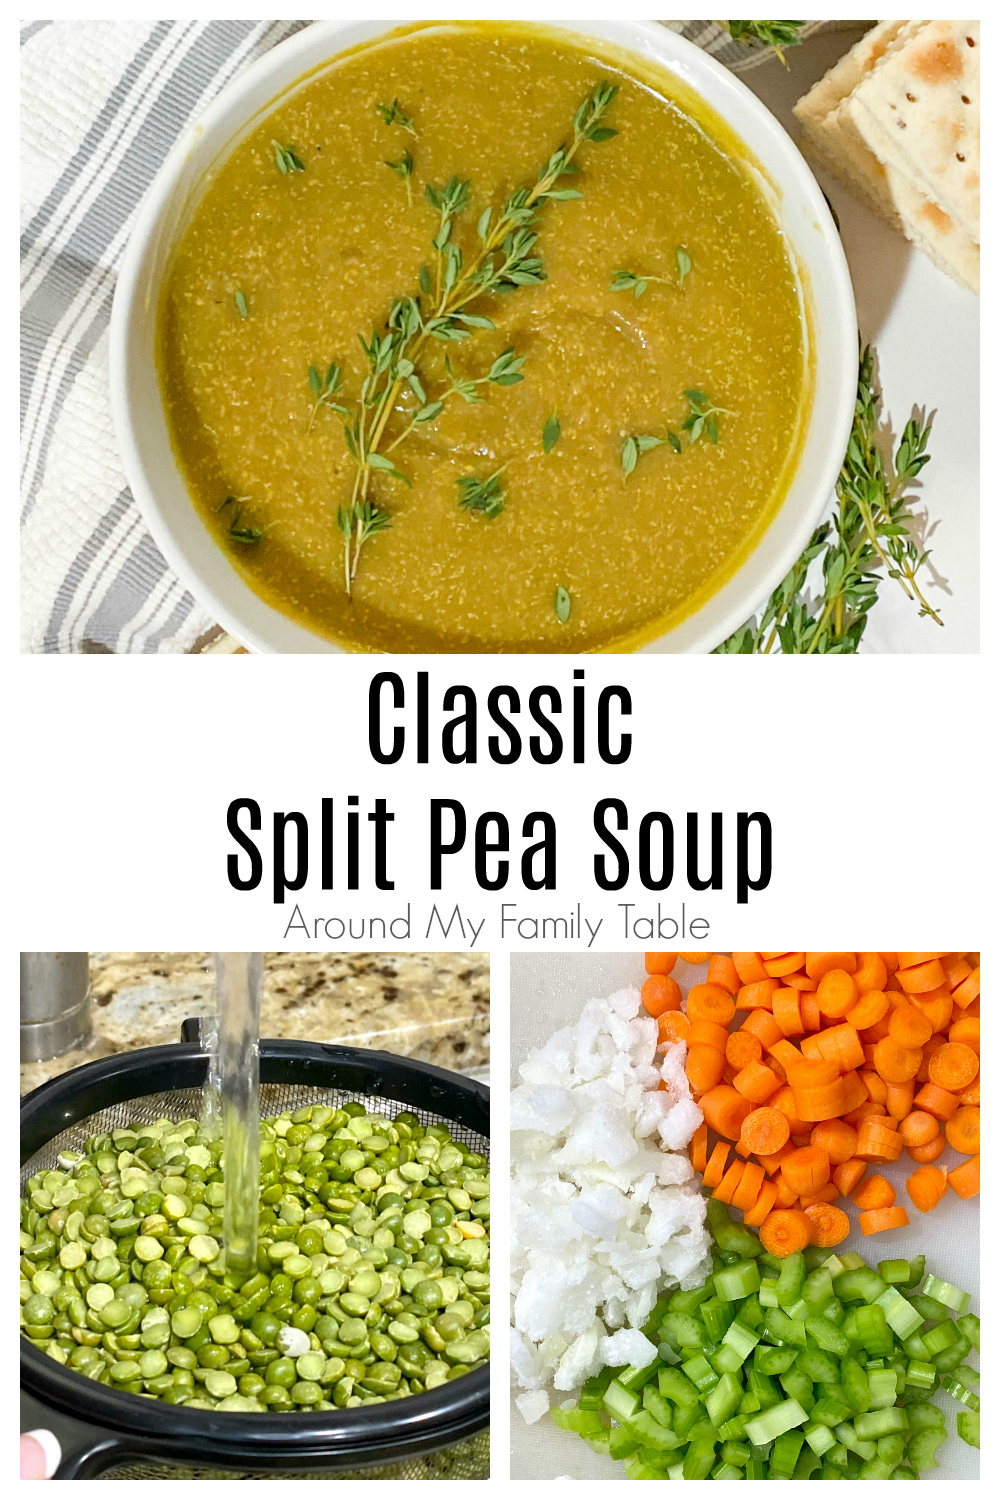 Delicious and simple Classic Split Pea Soup made with dried peas and a leftover ham bone screams comfort food. It's perfect for a cold winter day!